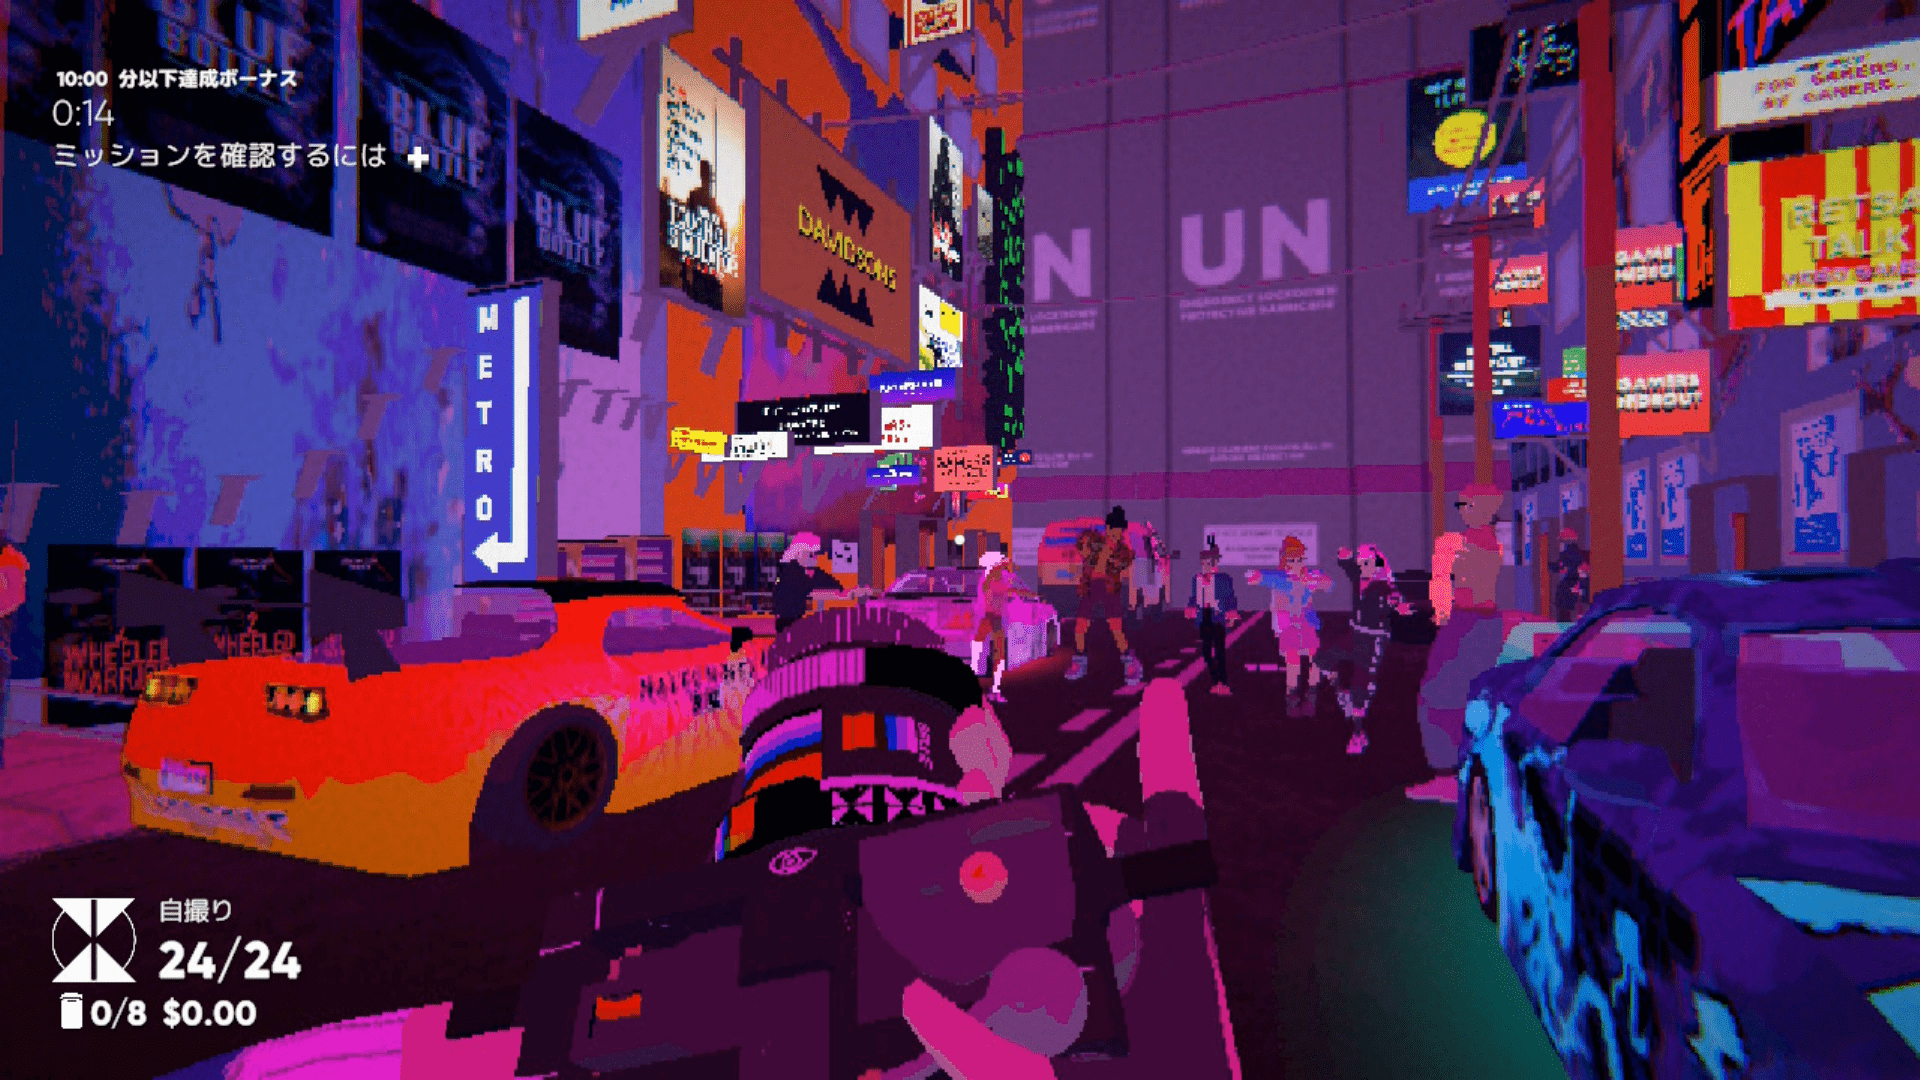 Screenshot from Umurangi Generation. First person perspective, with the character holding an SLR camera. Stood in a street in a vibrant, new city, with sports cars, people dancing in the street, and bright signs adorning all the buildings. In the background is a huge wall that says UN, standing for united nations, on it.